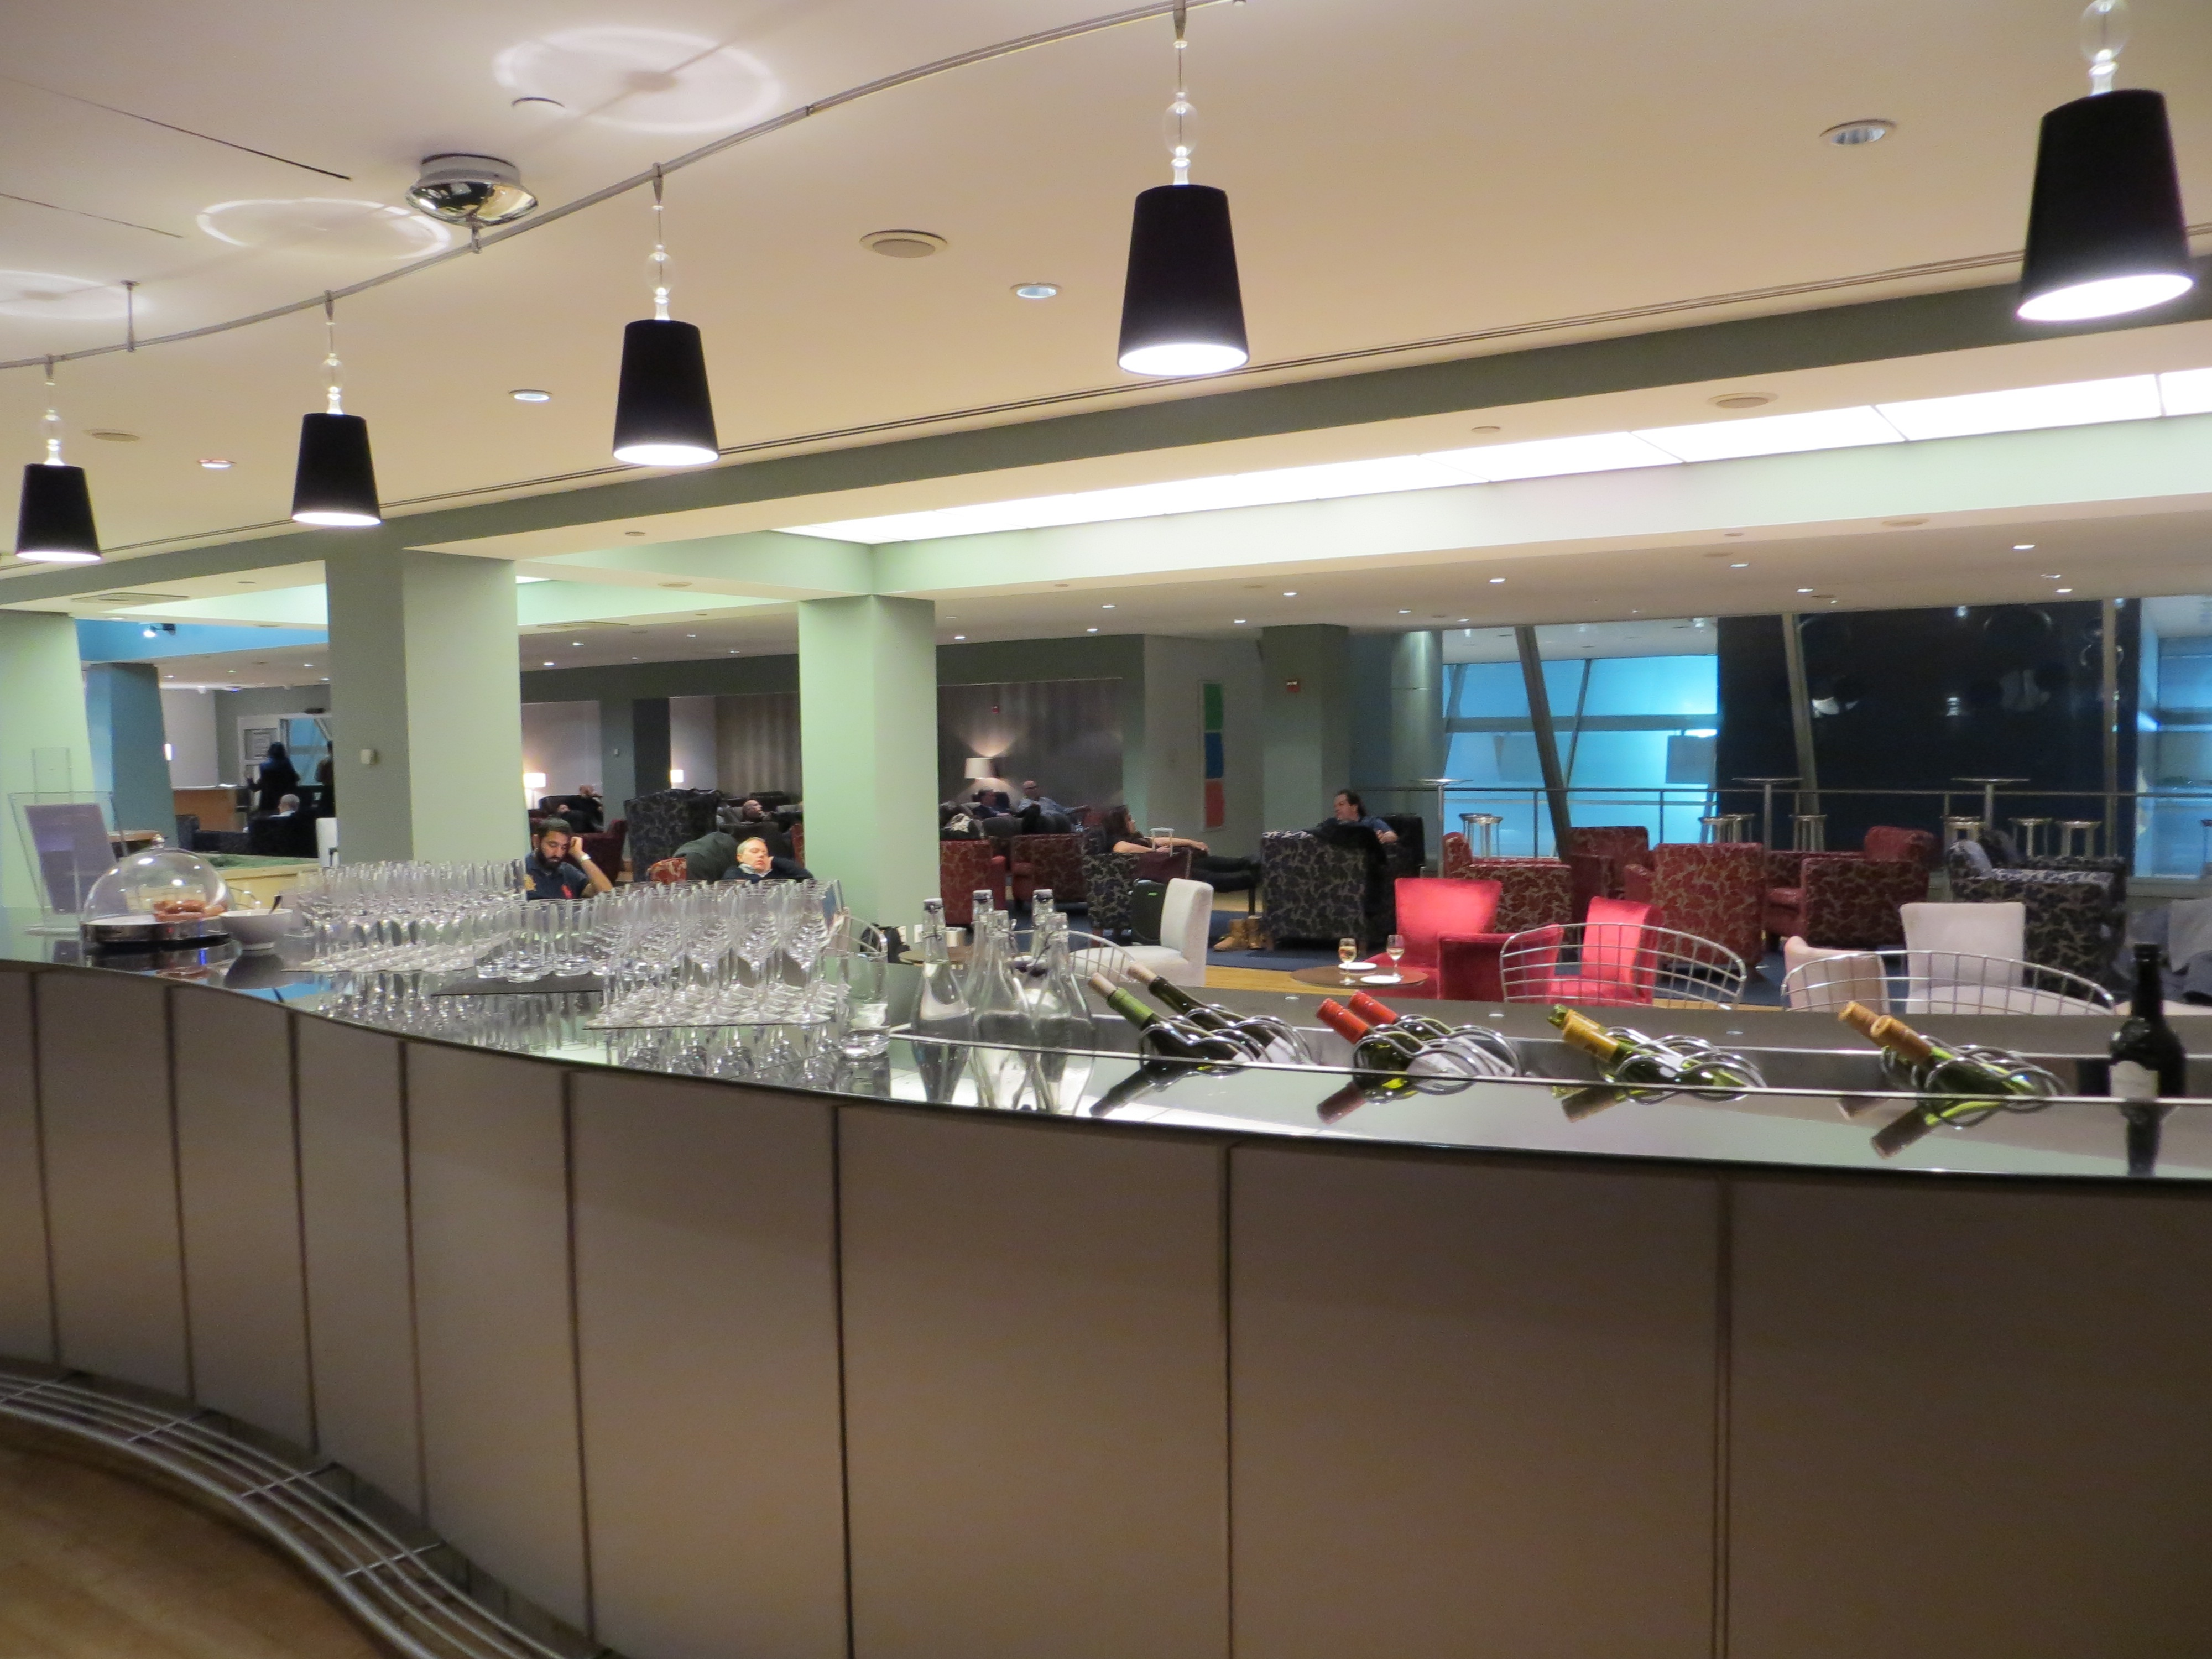 Cathay Pacific First Class JFK Lounge: British Airways Galleries